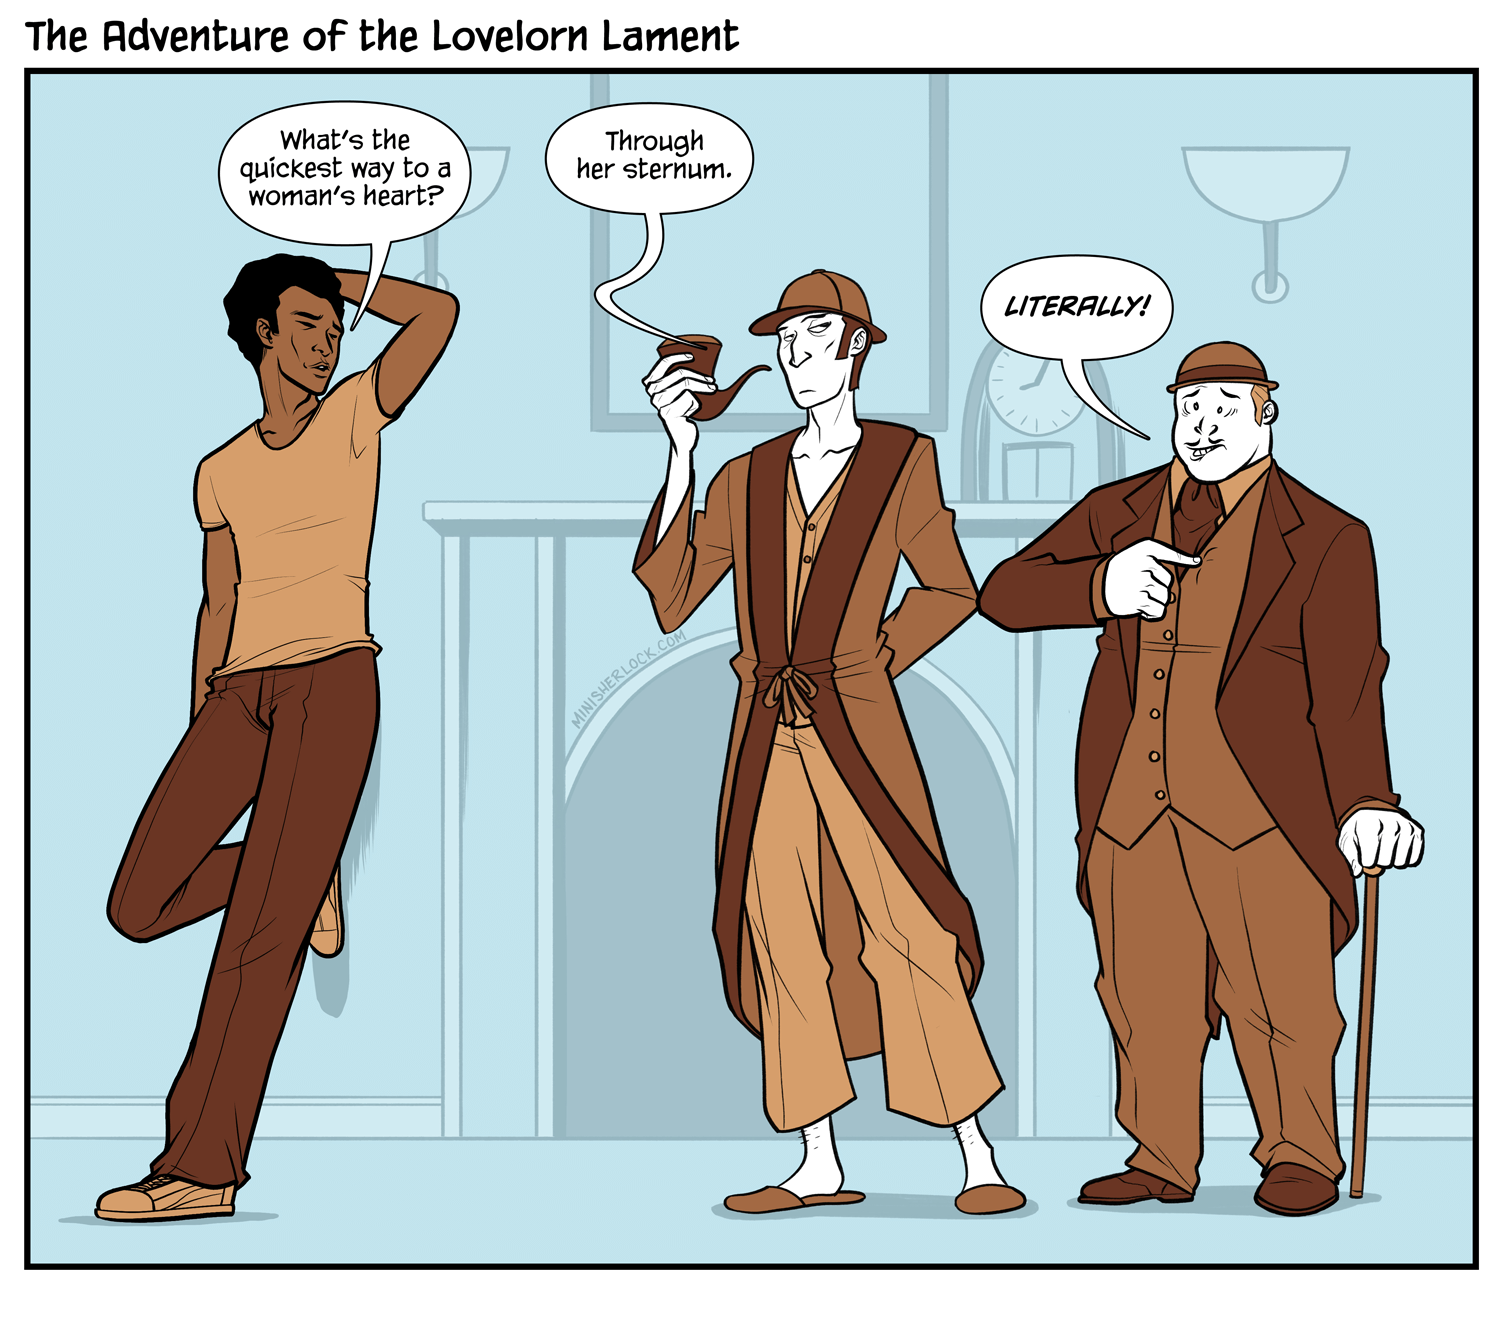 The Adventure of the Lovelorn Lament